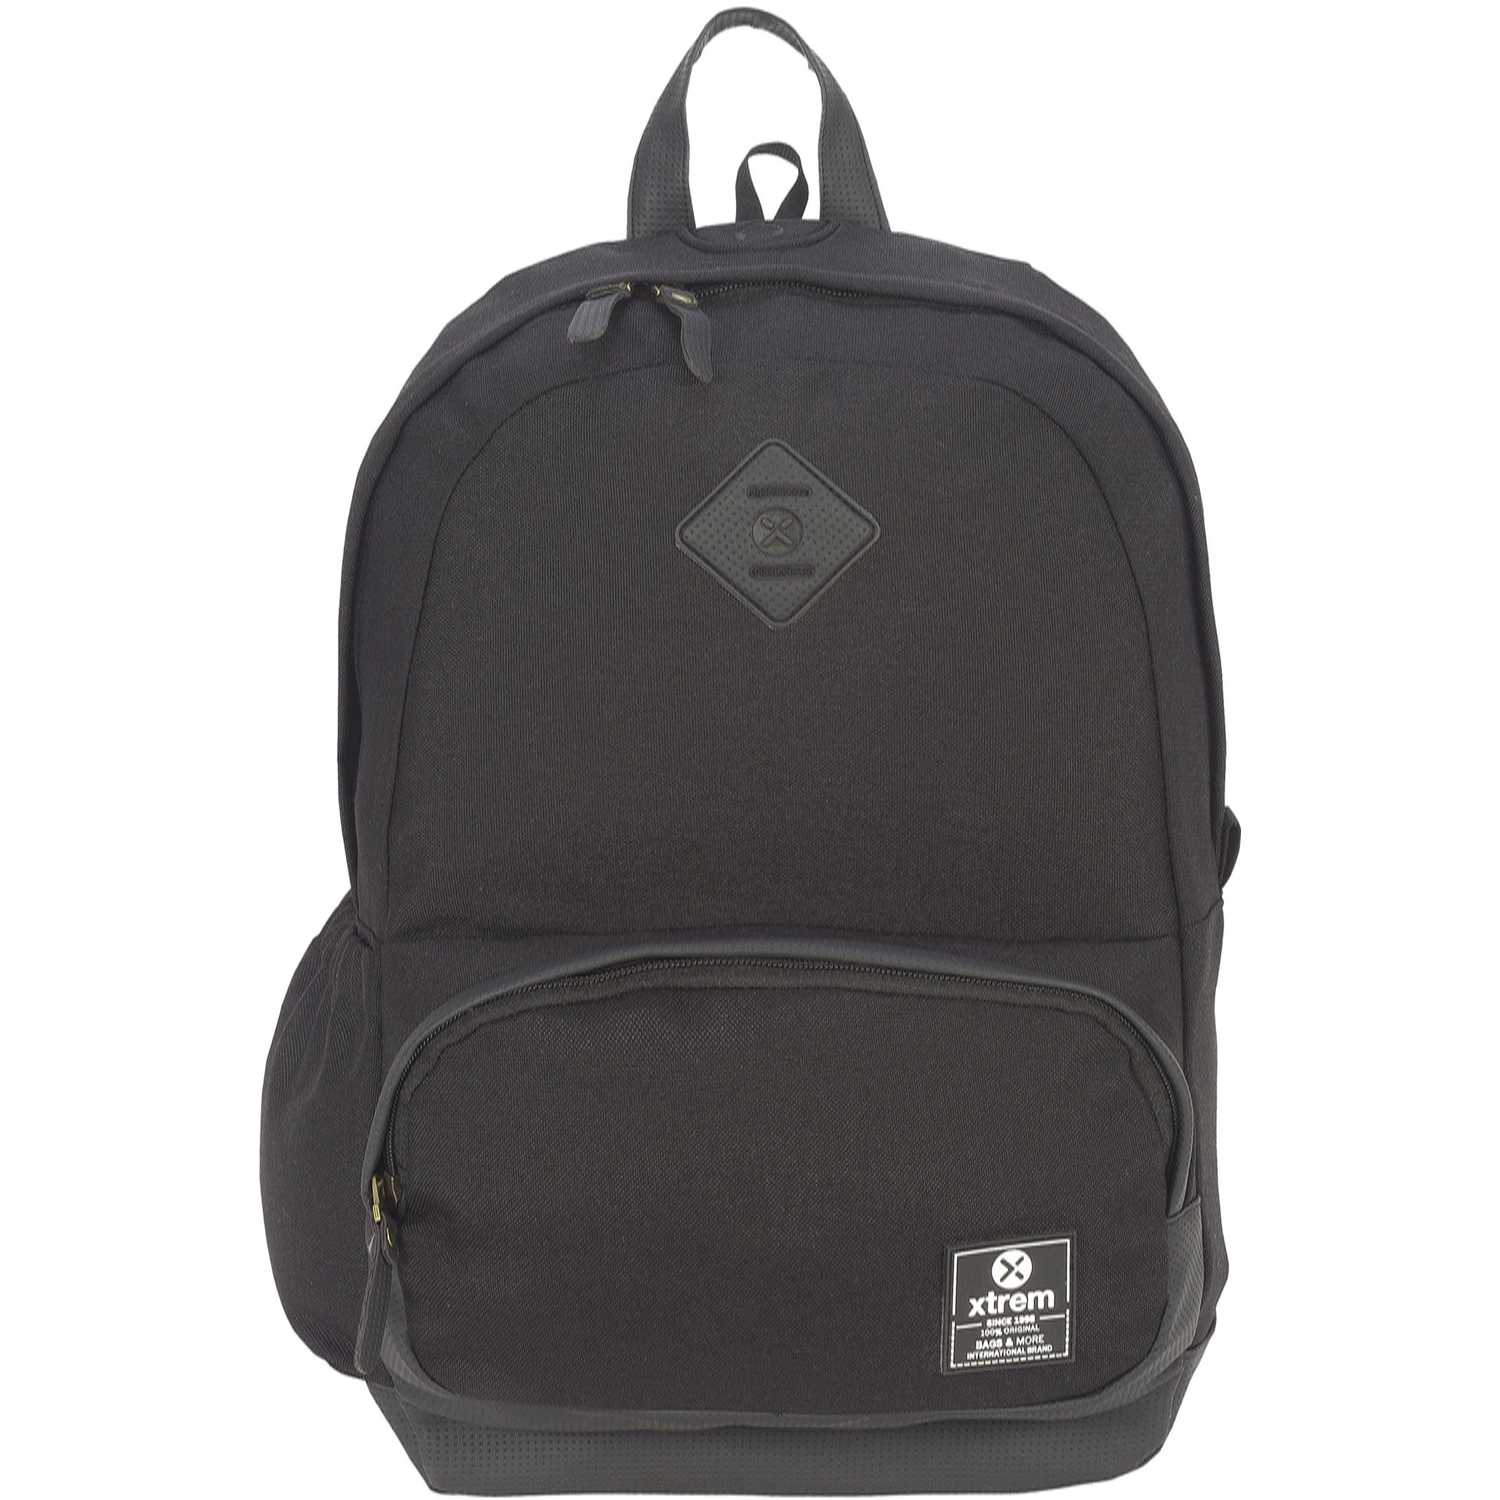 Xtrem backpack black sun 807 Negro mochilas